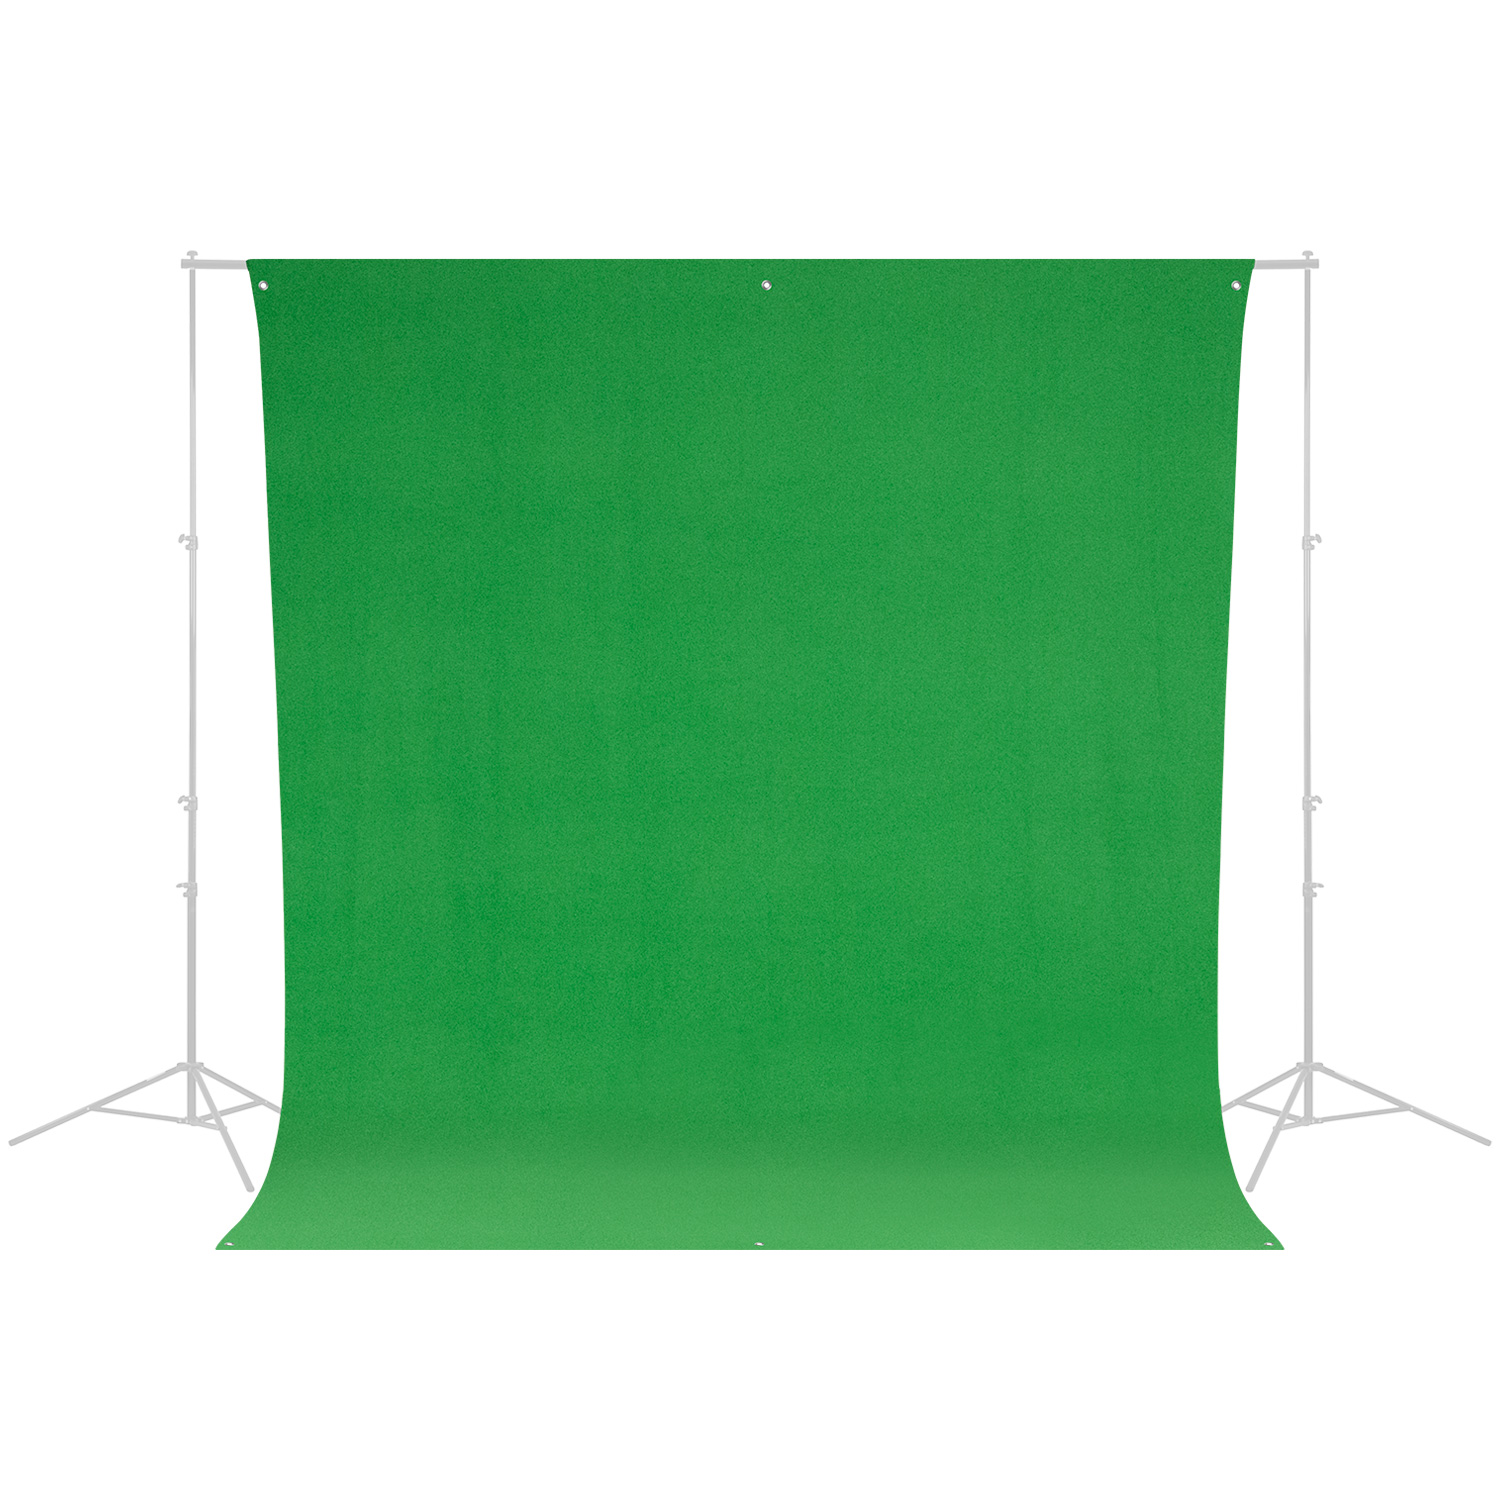 Wrinkle-Resistant Backdrop - Chroma-Key Green Screen (9' x 10')